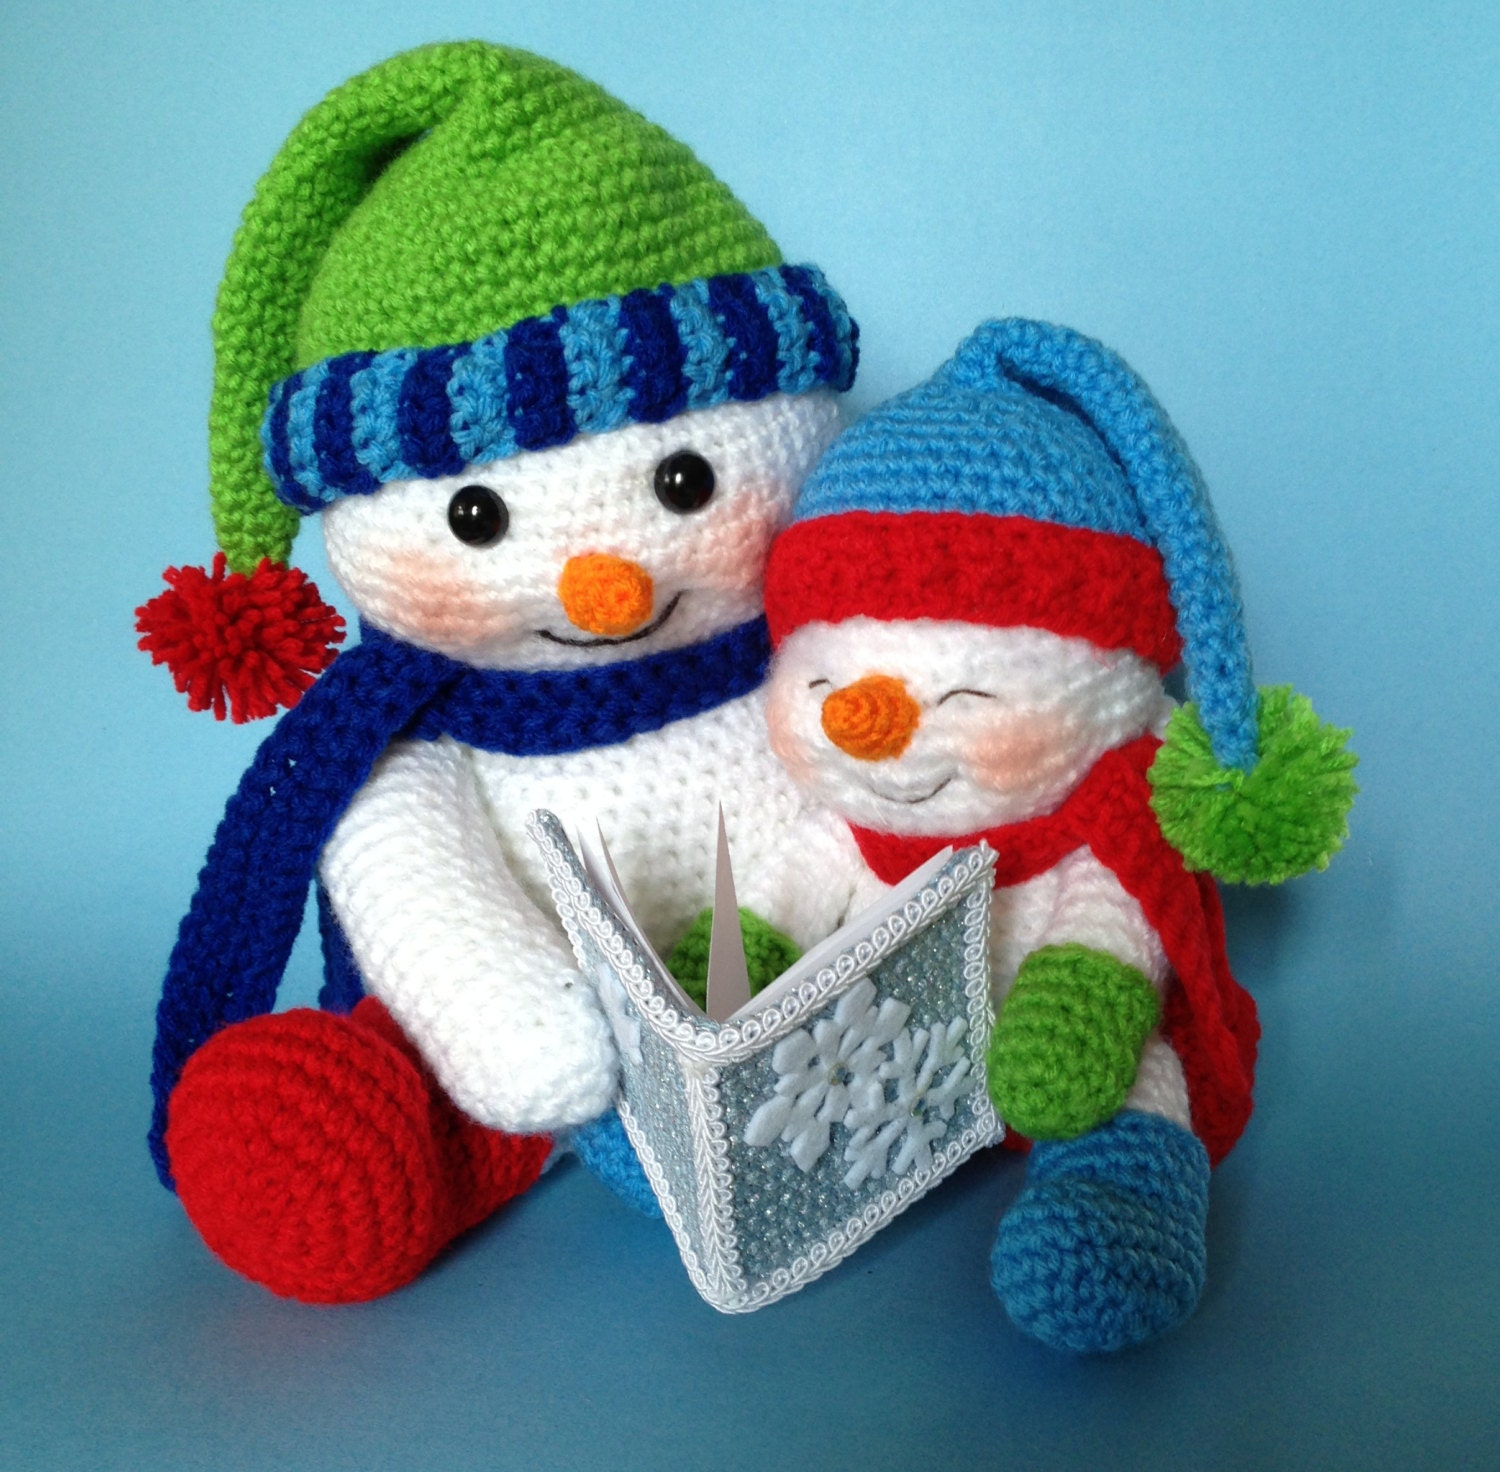 Worksheet Snowman Reading pdf crochet pattern for reading snowman english only